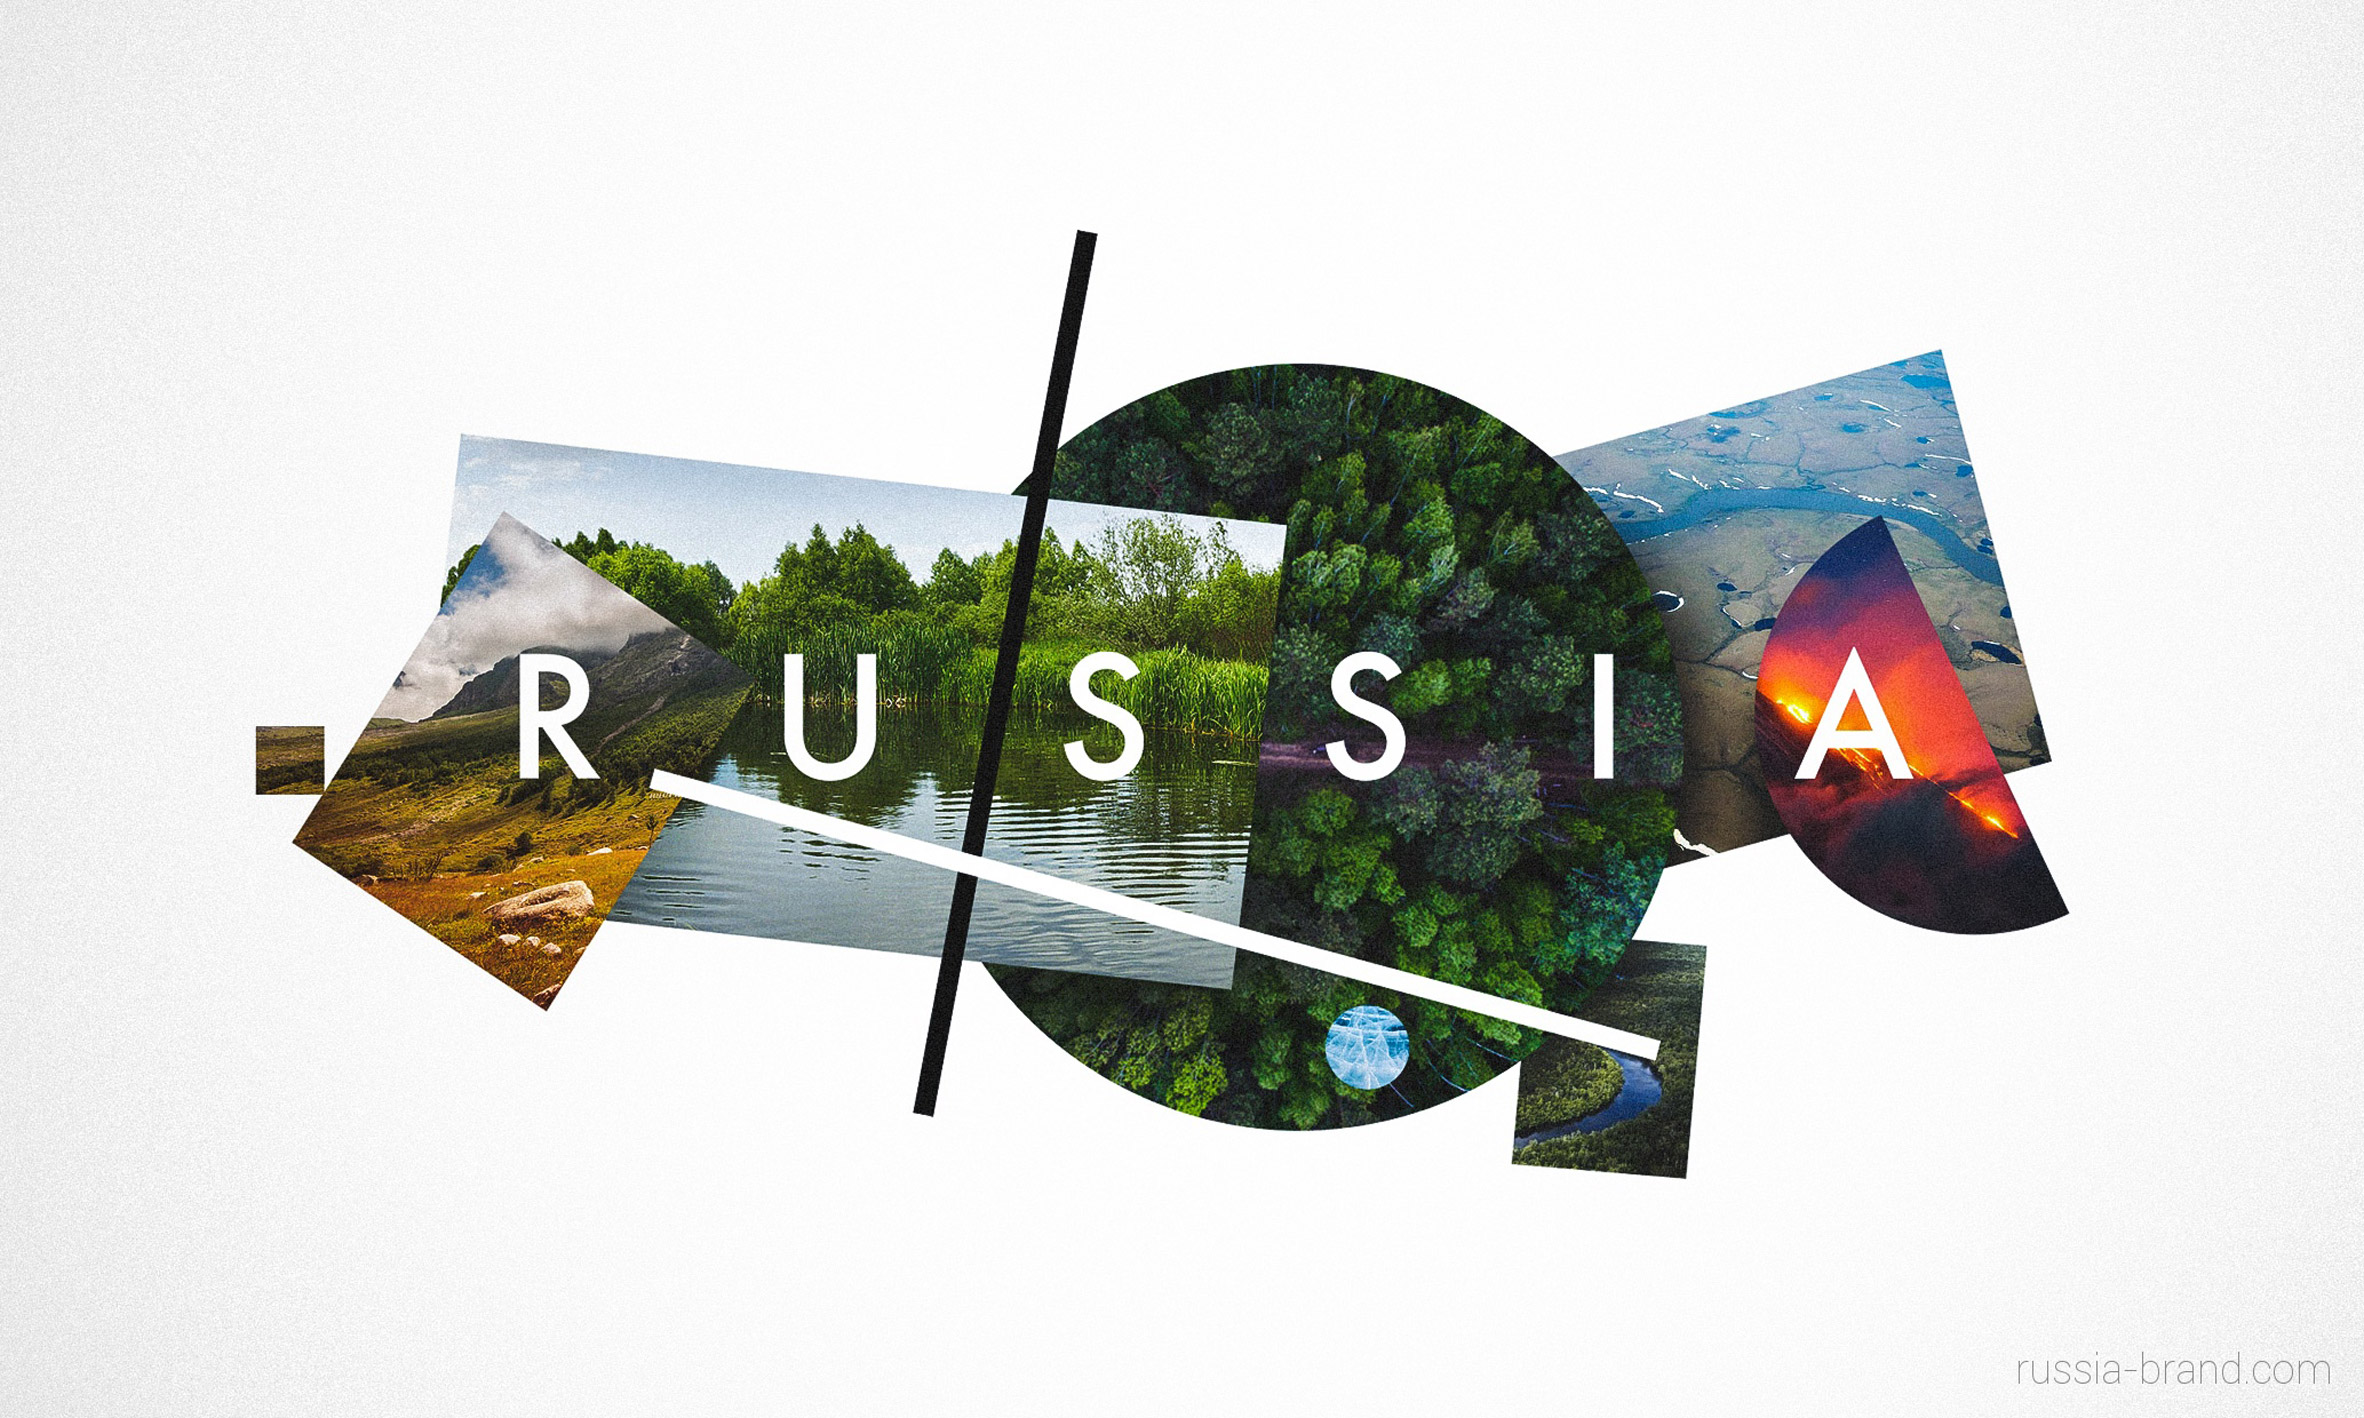 Russia develops a tourist logo inspired by its famous